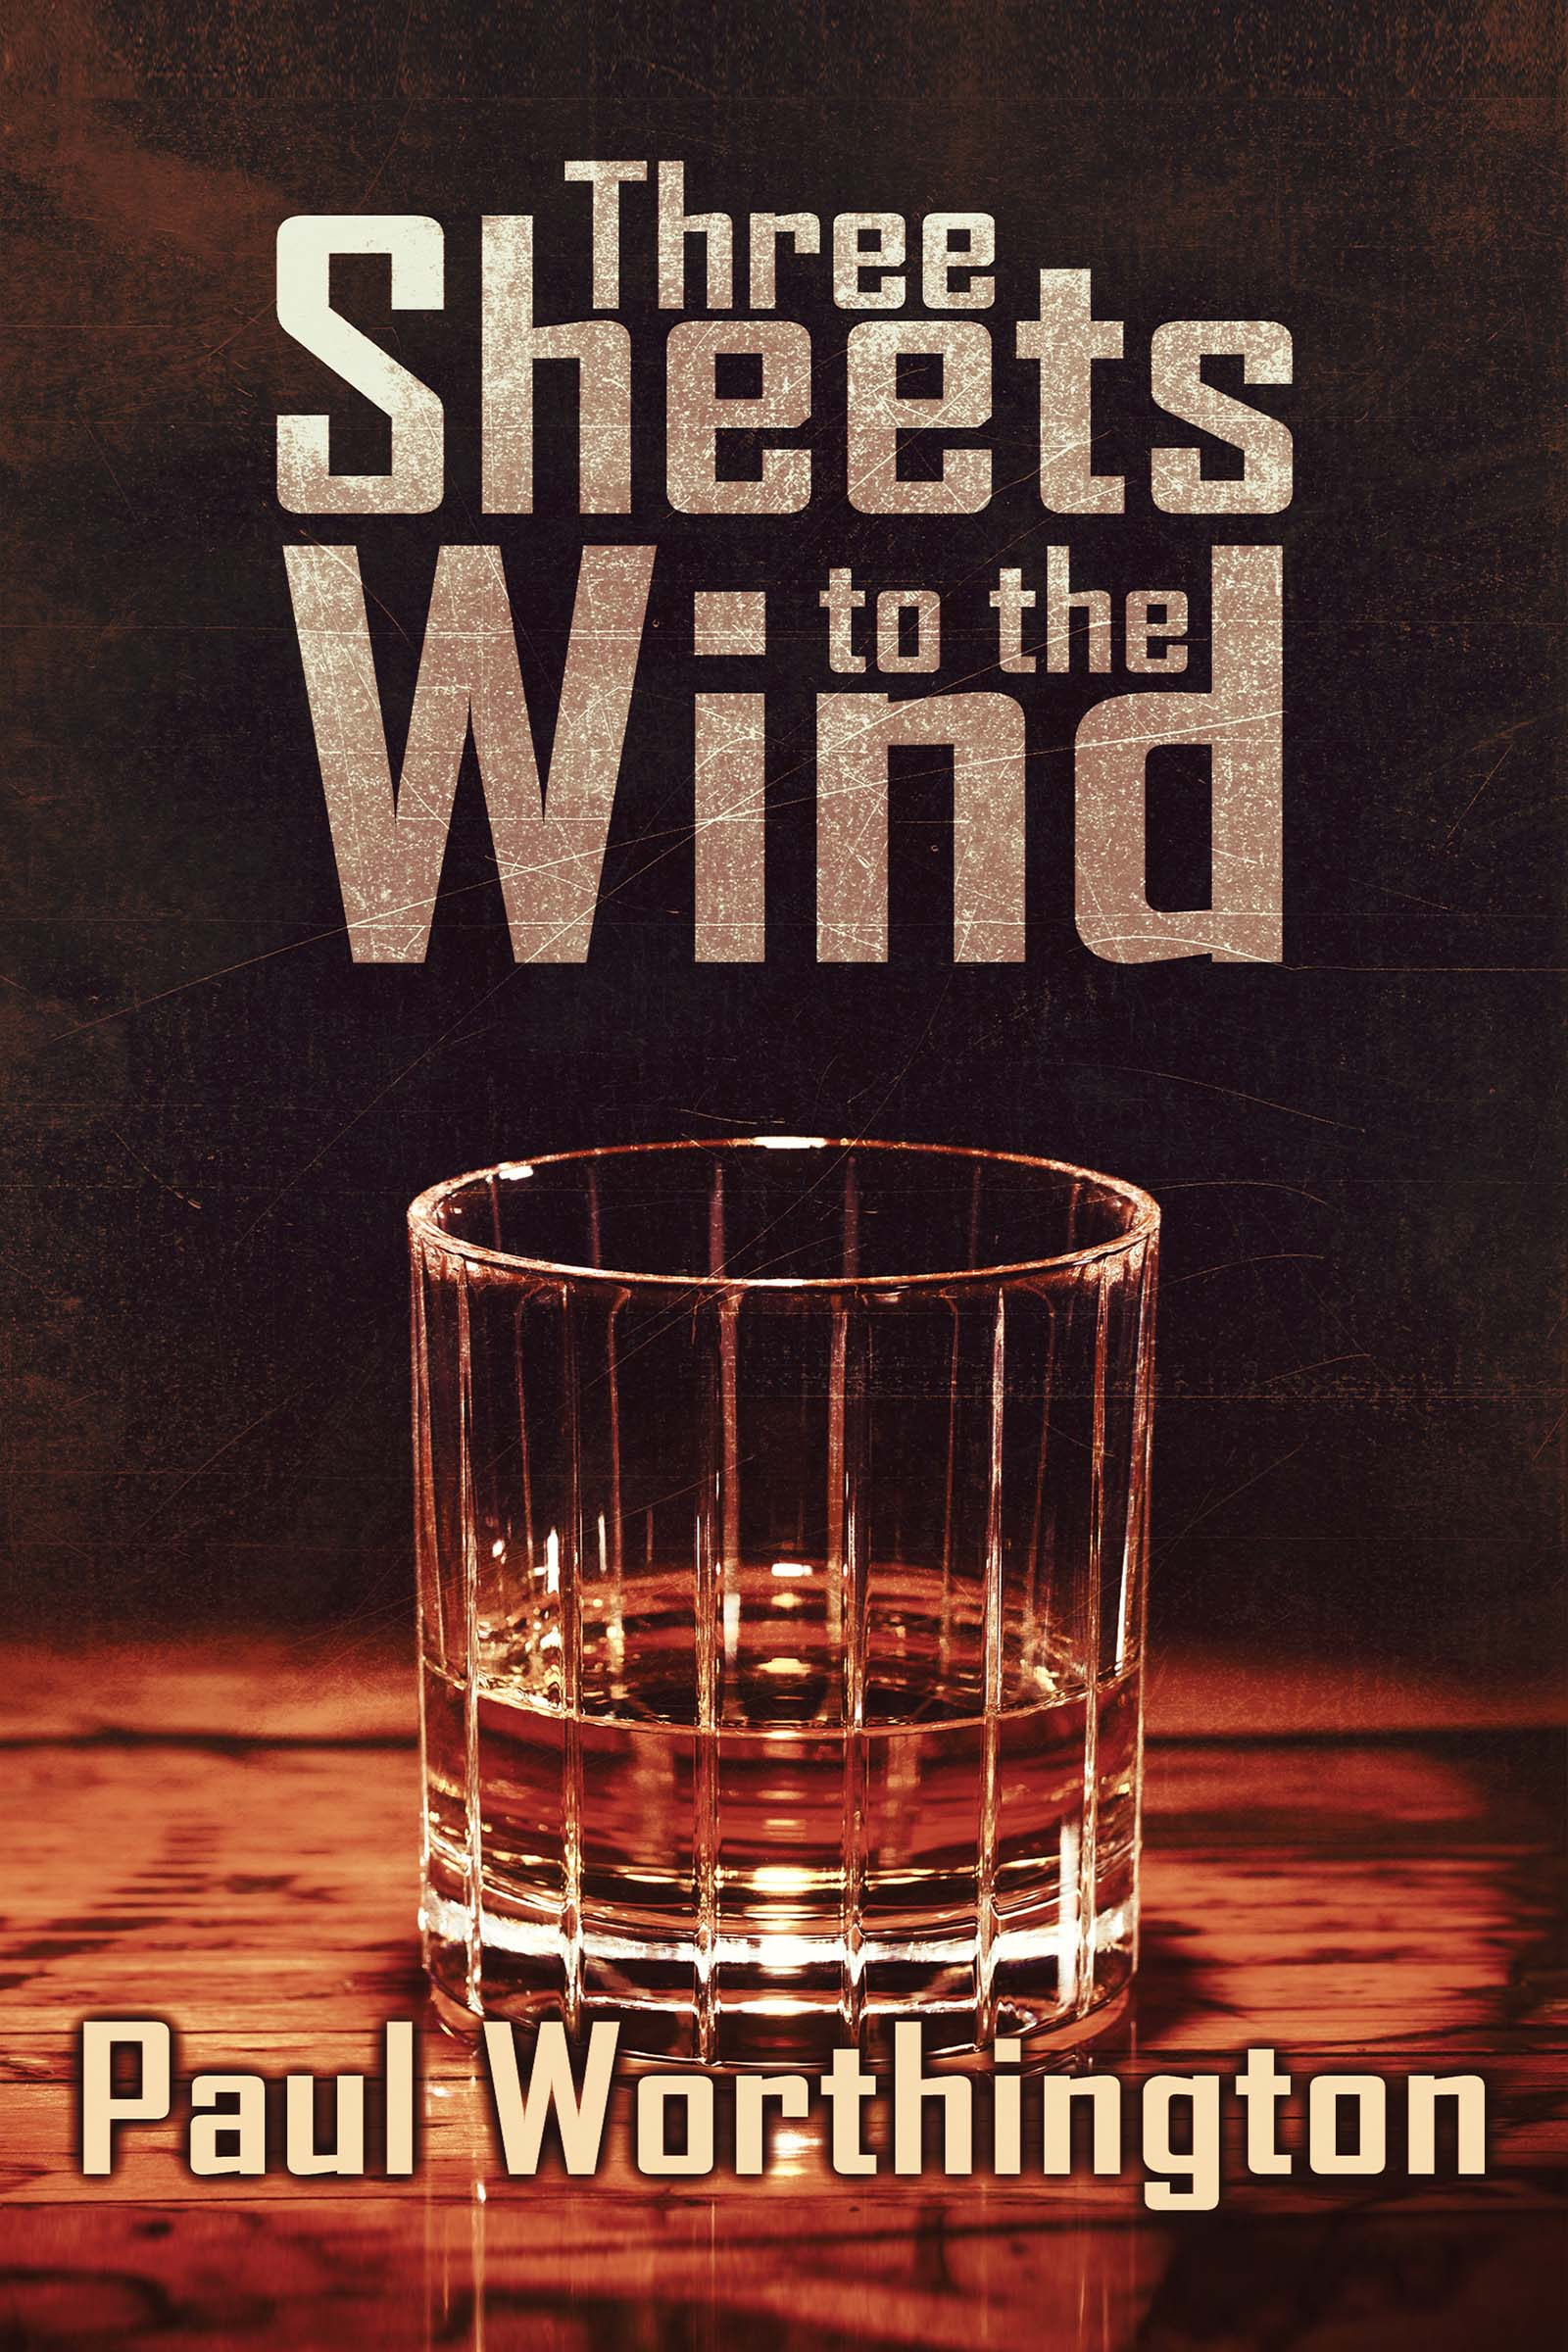 Three Sheets to the Wind – A Short Story